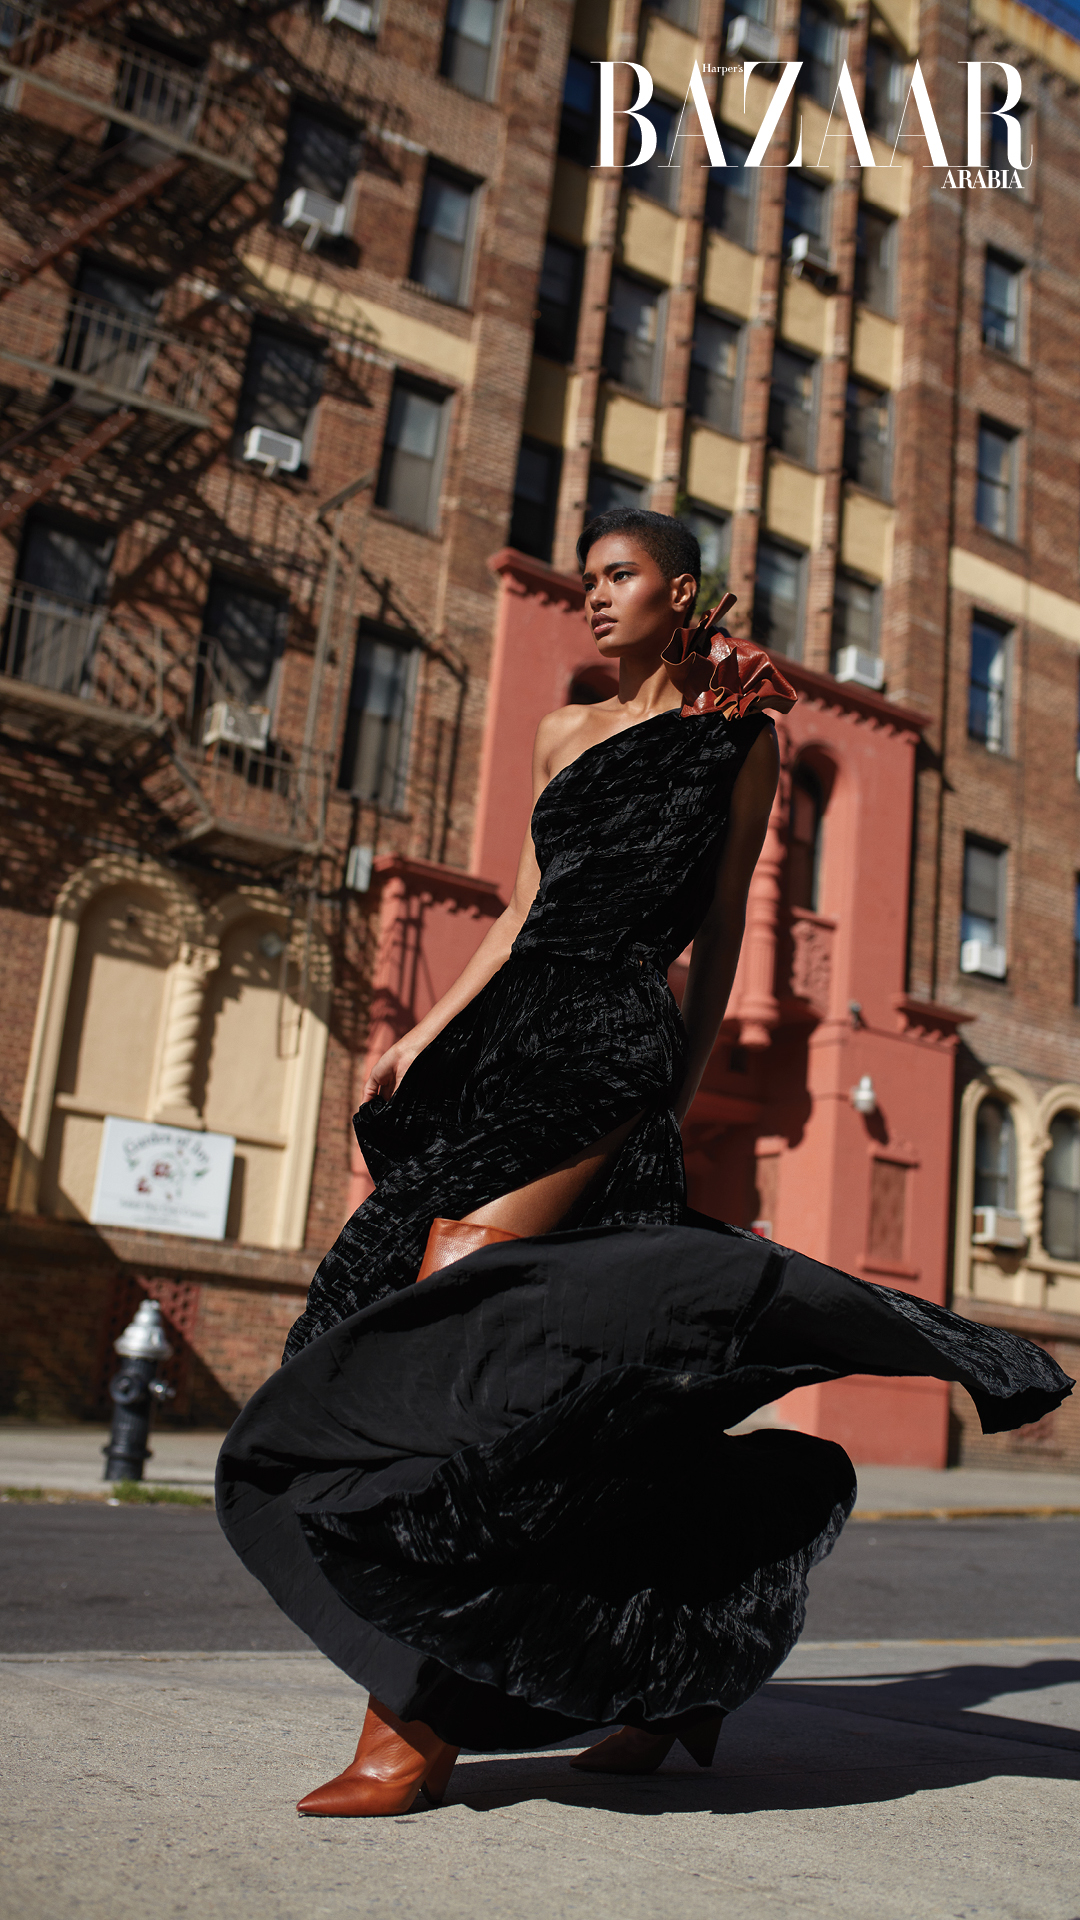 Urban energy infuses an individual sense of style  – make the streets your own this season